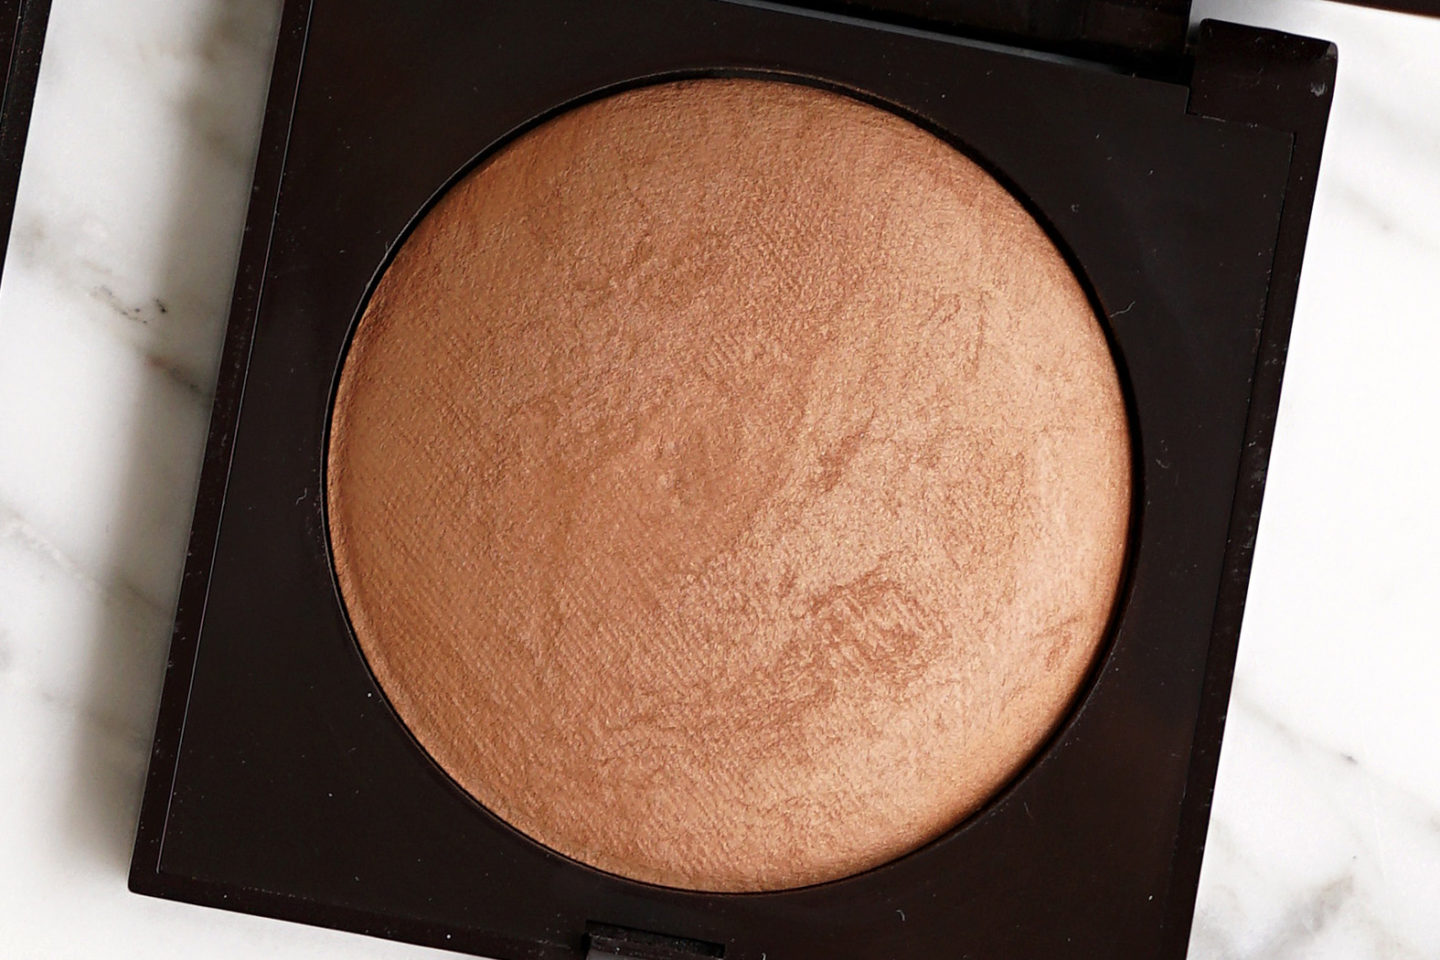 Laura Mercier Matte Radiance Powder Bronze 04